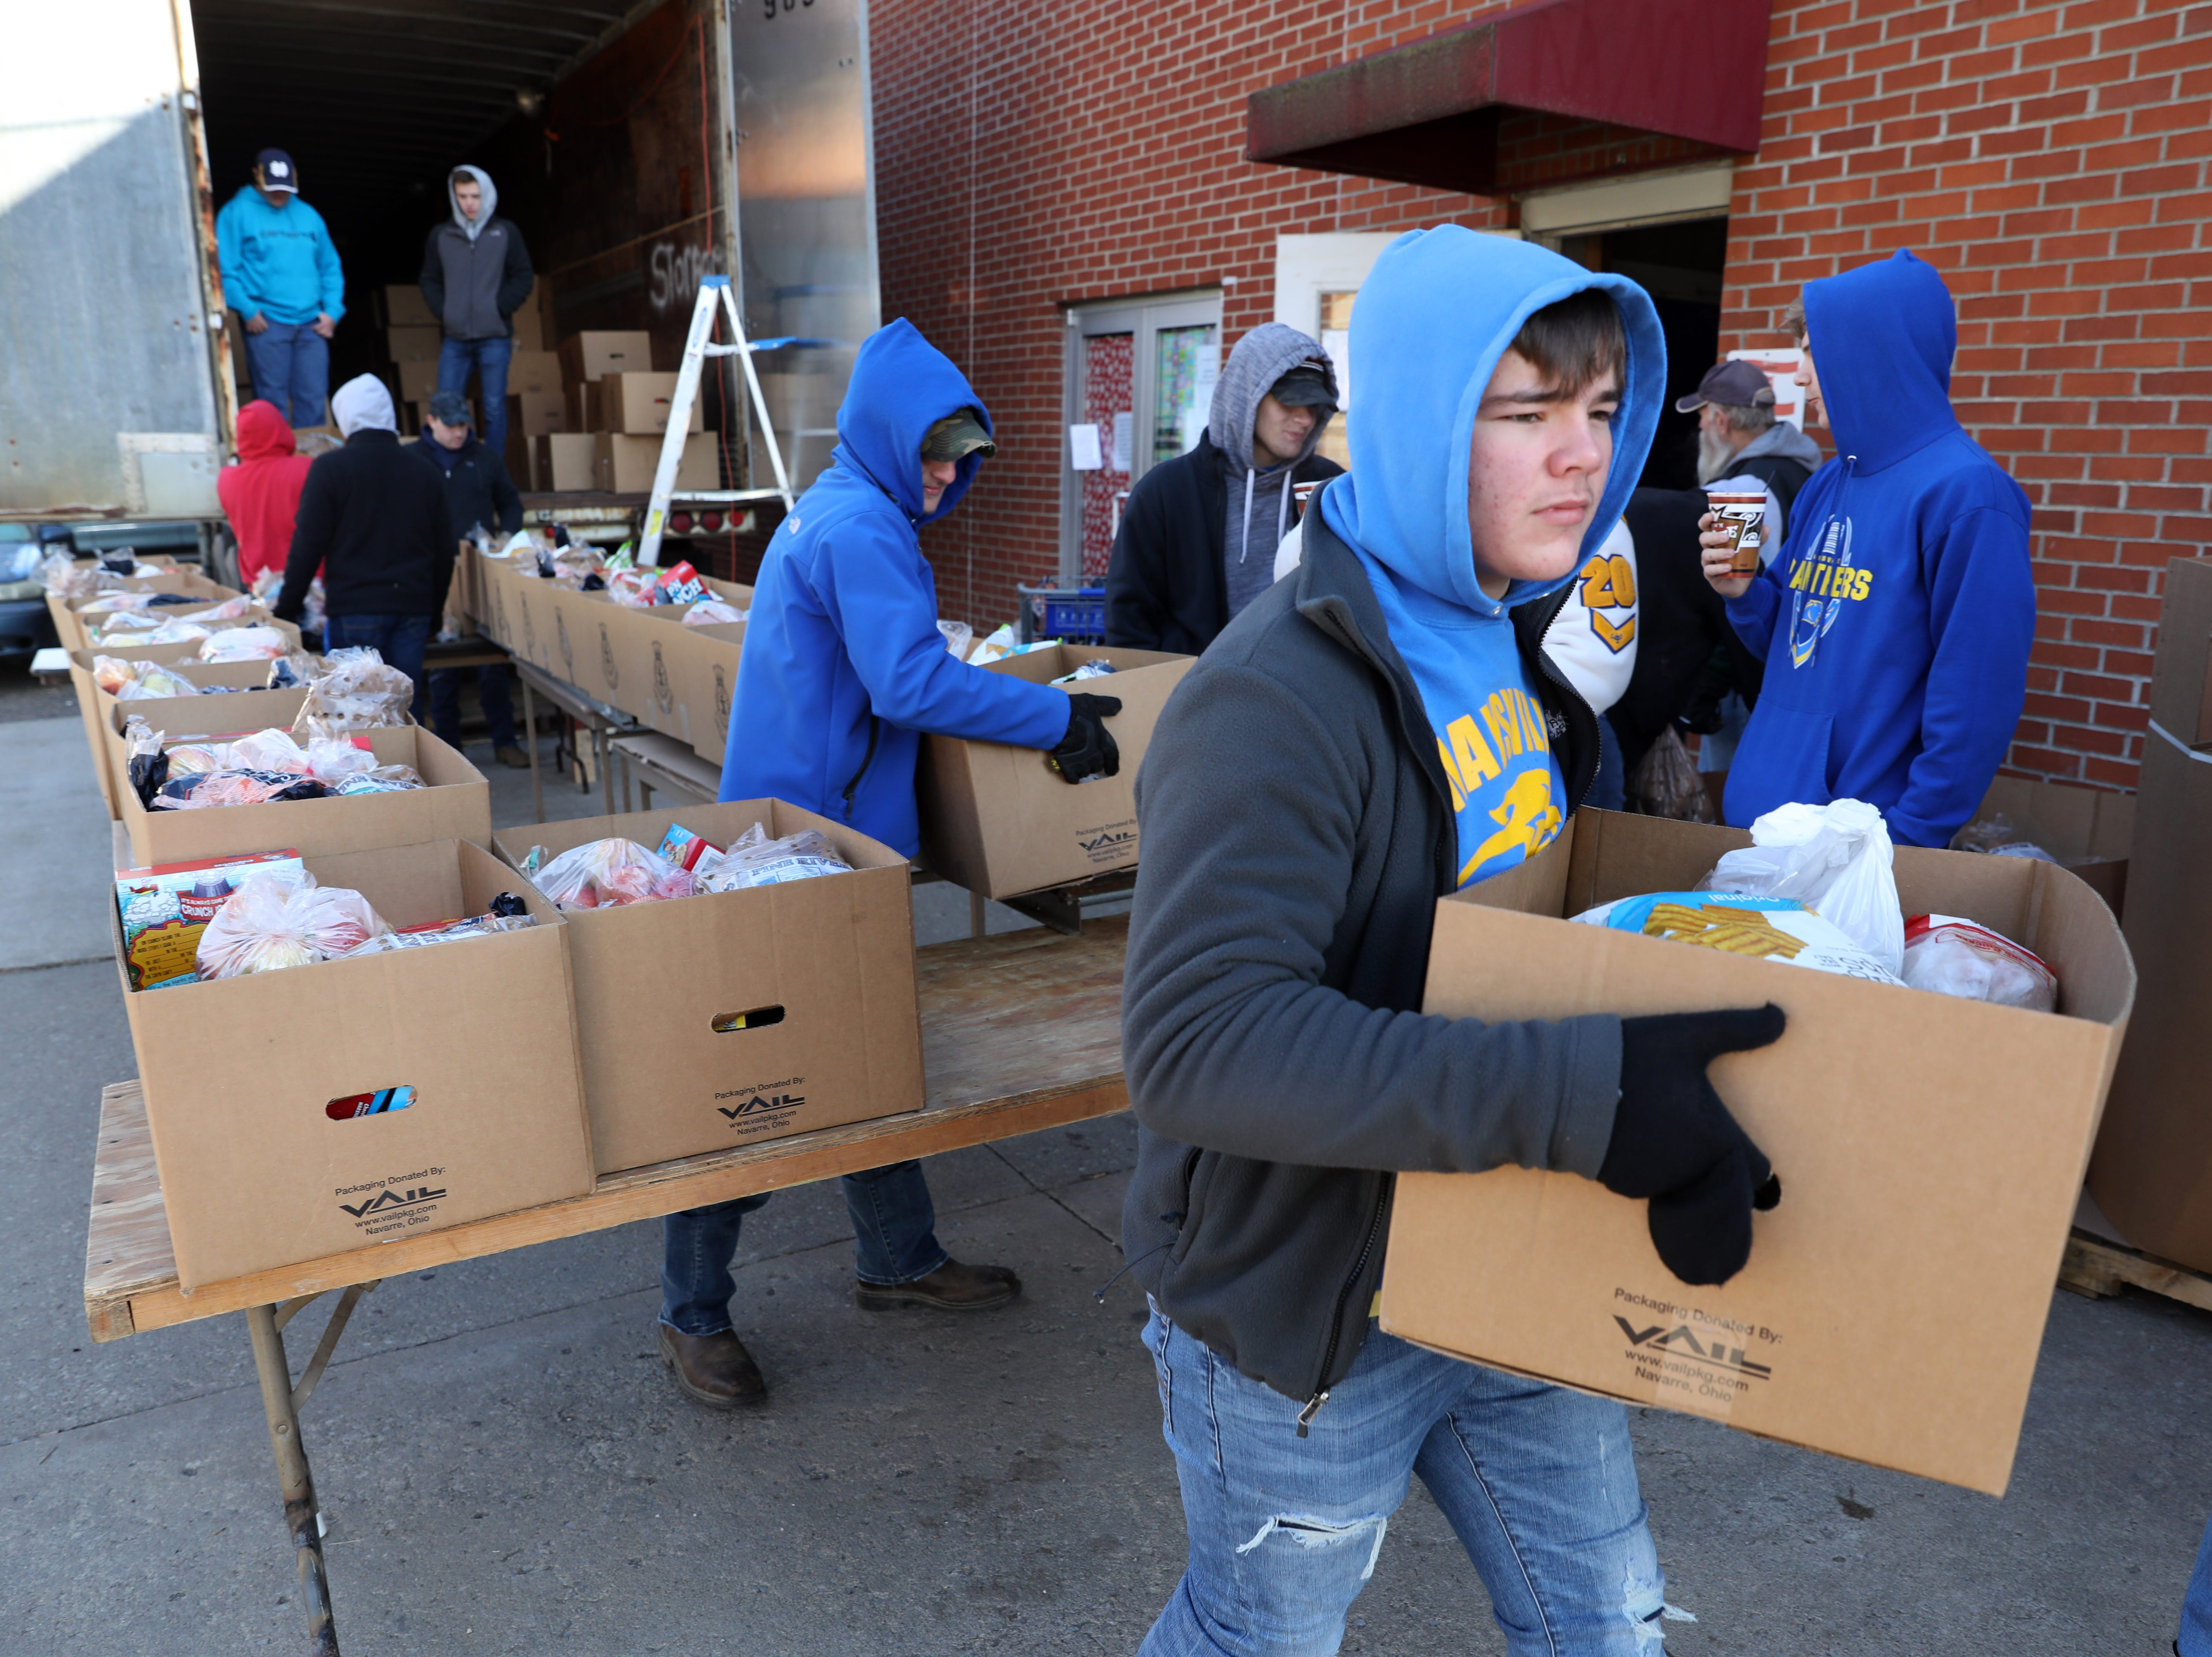 Maysville High School football players volunteered at the Salvation Army for it's annual food and present disbursement on Tuesday.